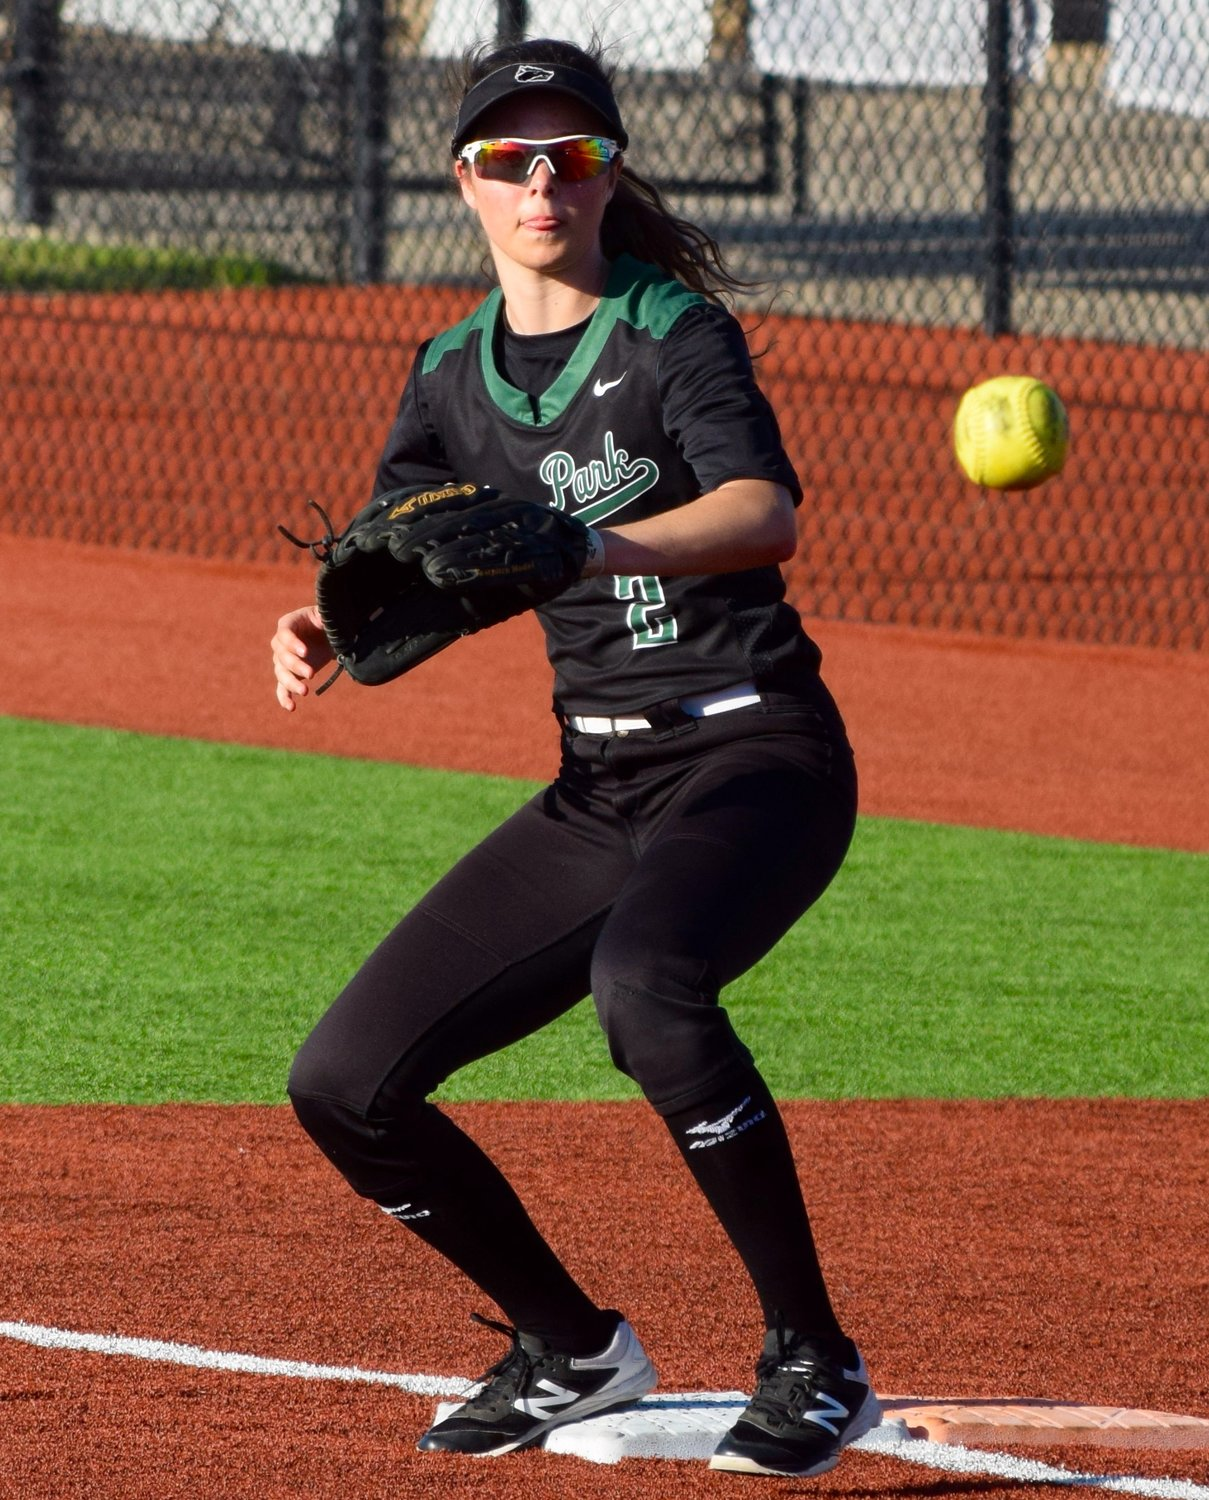 Reagan Hillis drove in a run, but Cedar Park lost to East View 4-3 in extra innings on Friday to bring the Lady Timberwolves' season to an end.